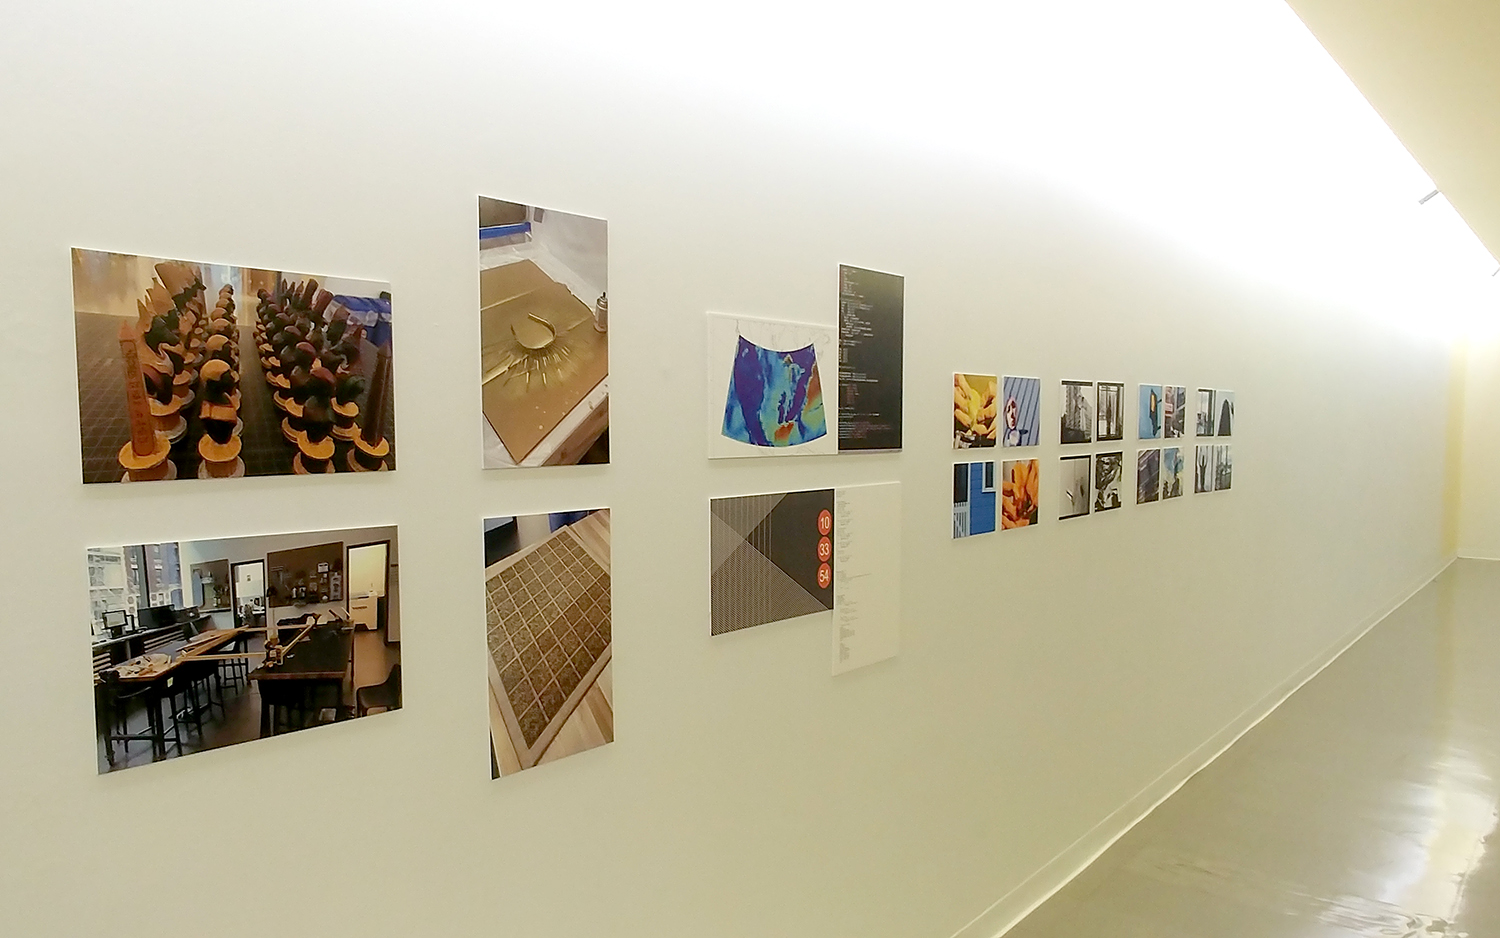 Photos of projects from the centers, hung on a long white wall.